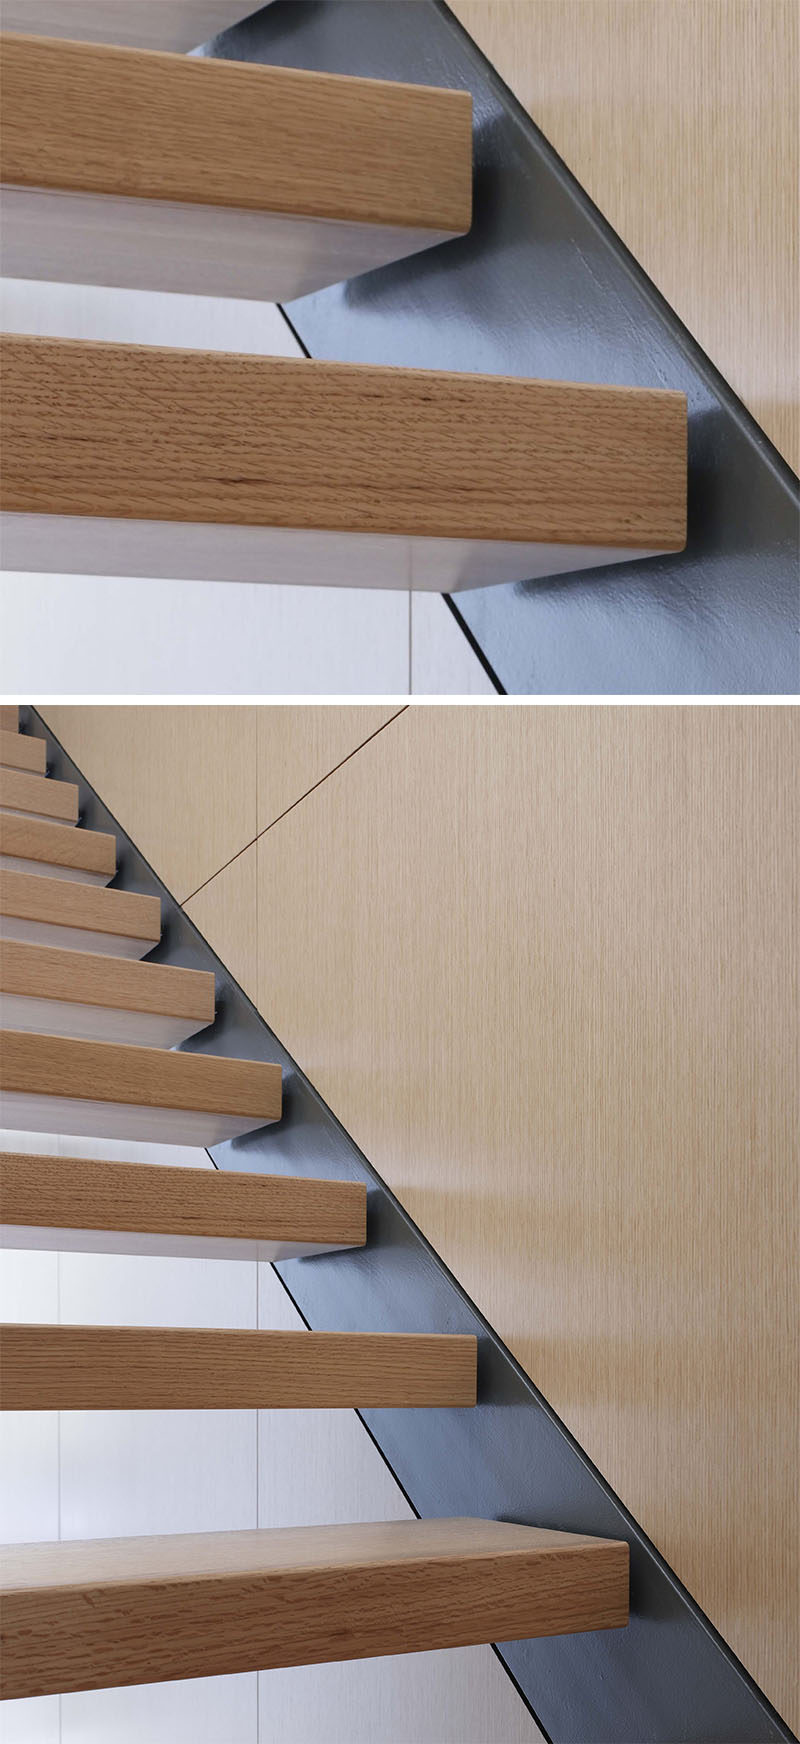 18 Examples Of Stair Details To Inspire You // The Wooden Steps Are  Attached To